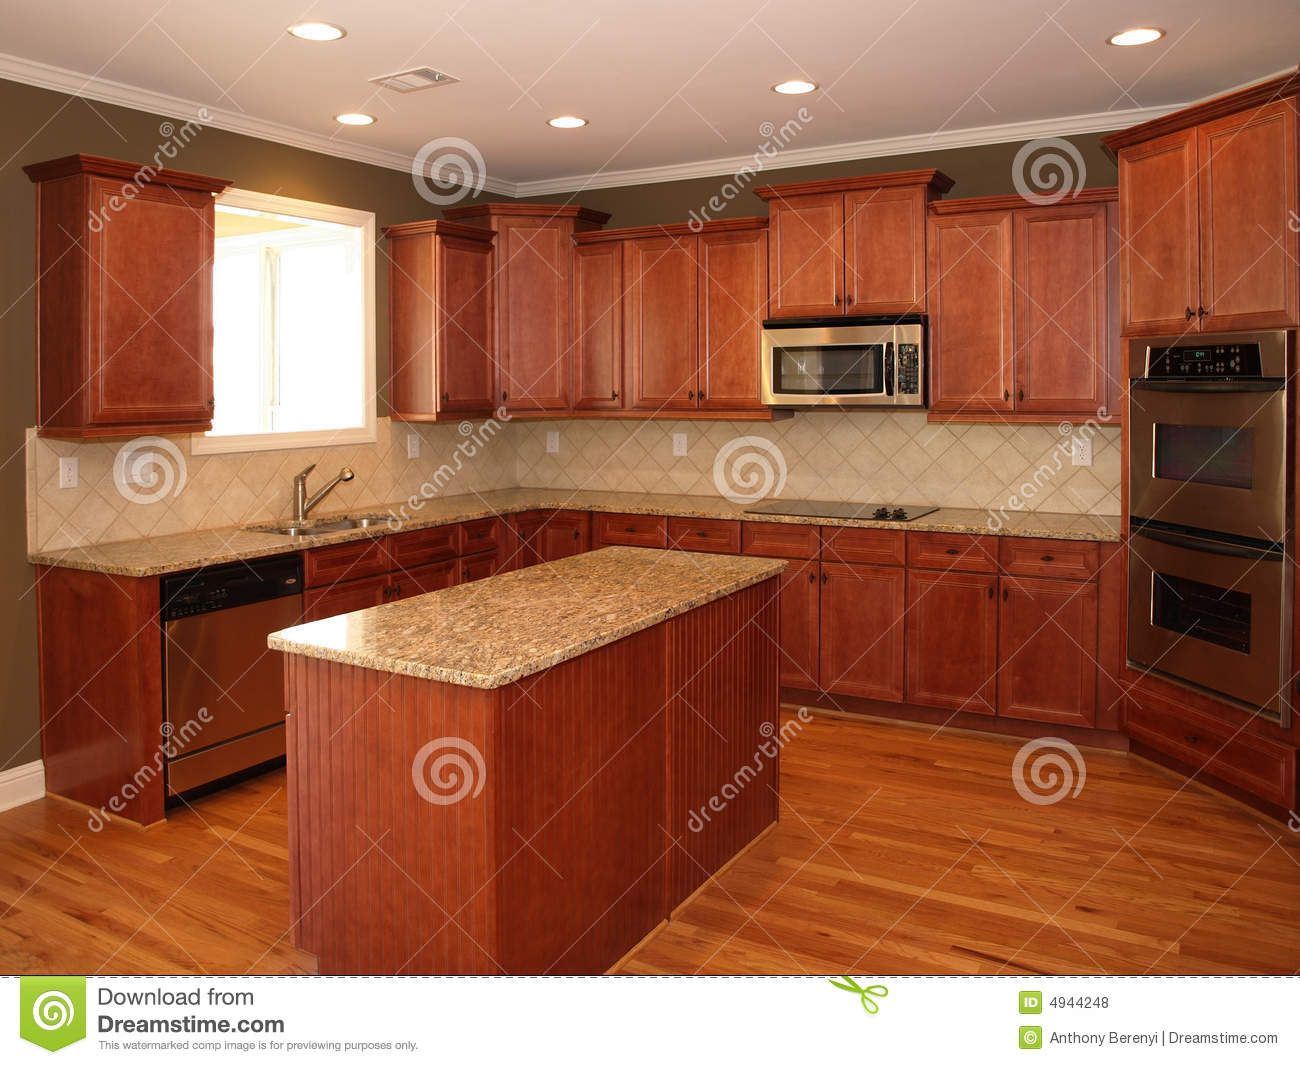 Luxury Cherry Wood Kitchen With Island Royalty Free Stock Photos